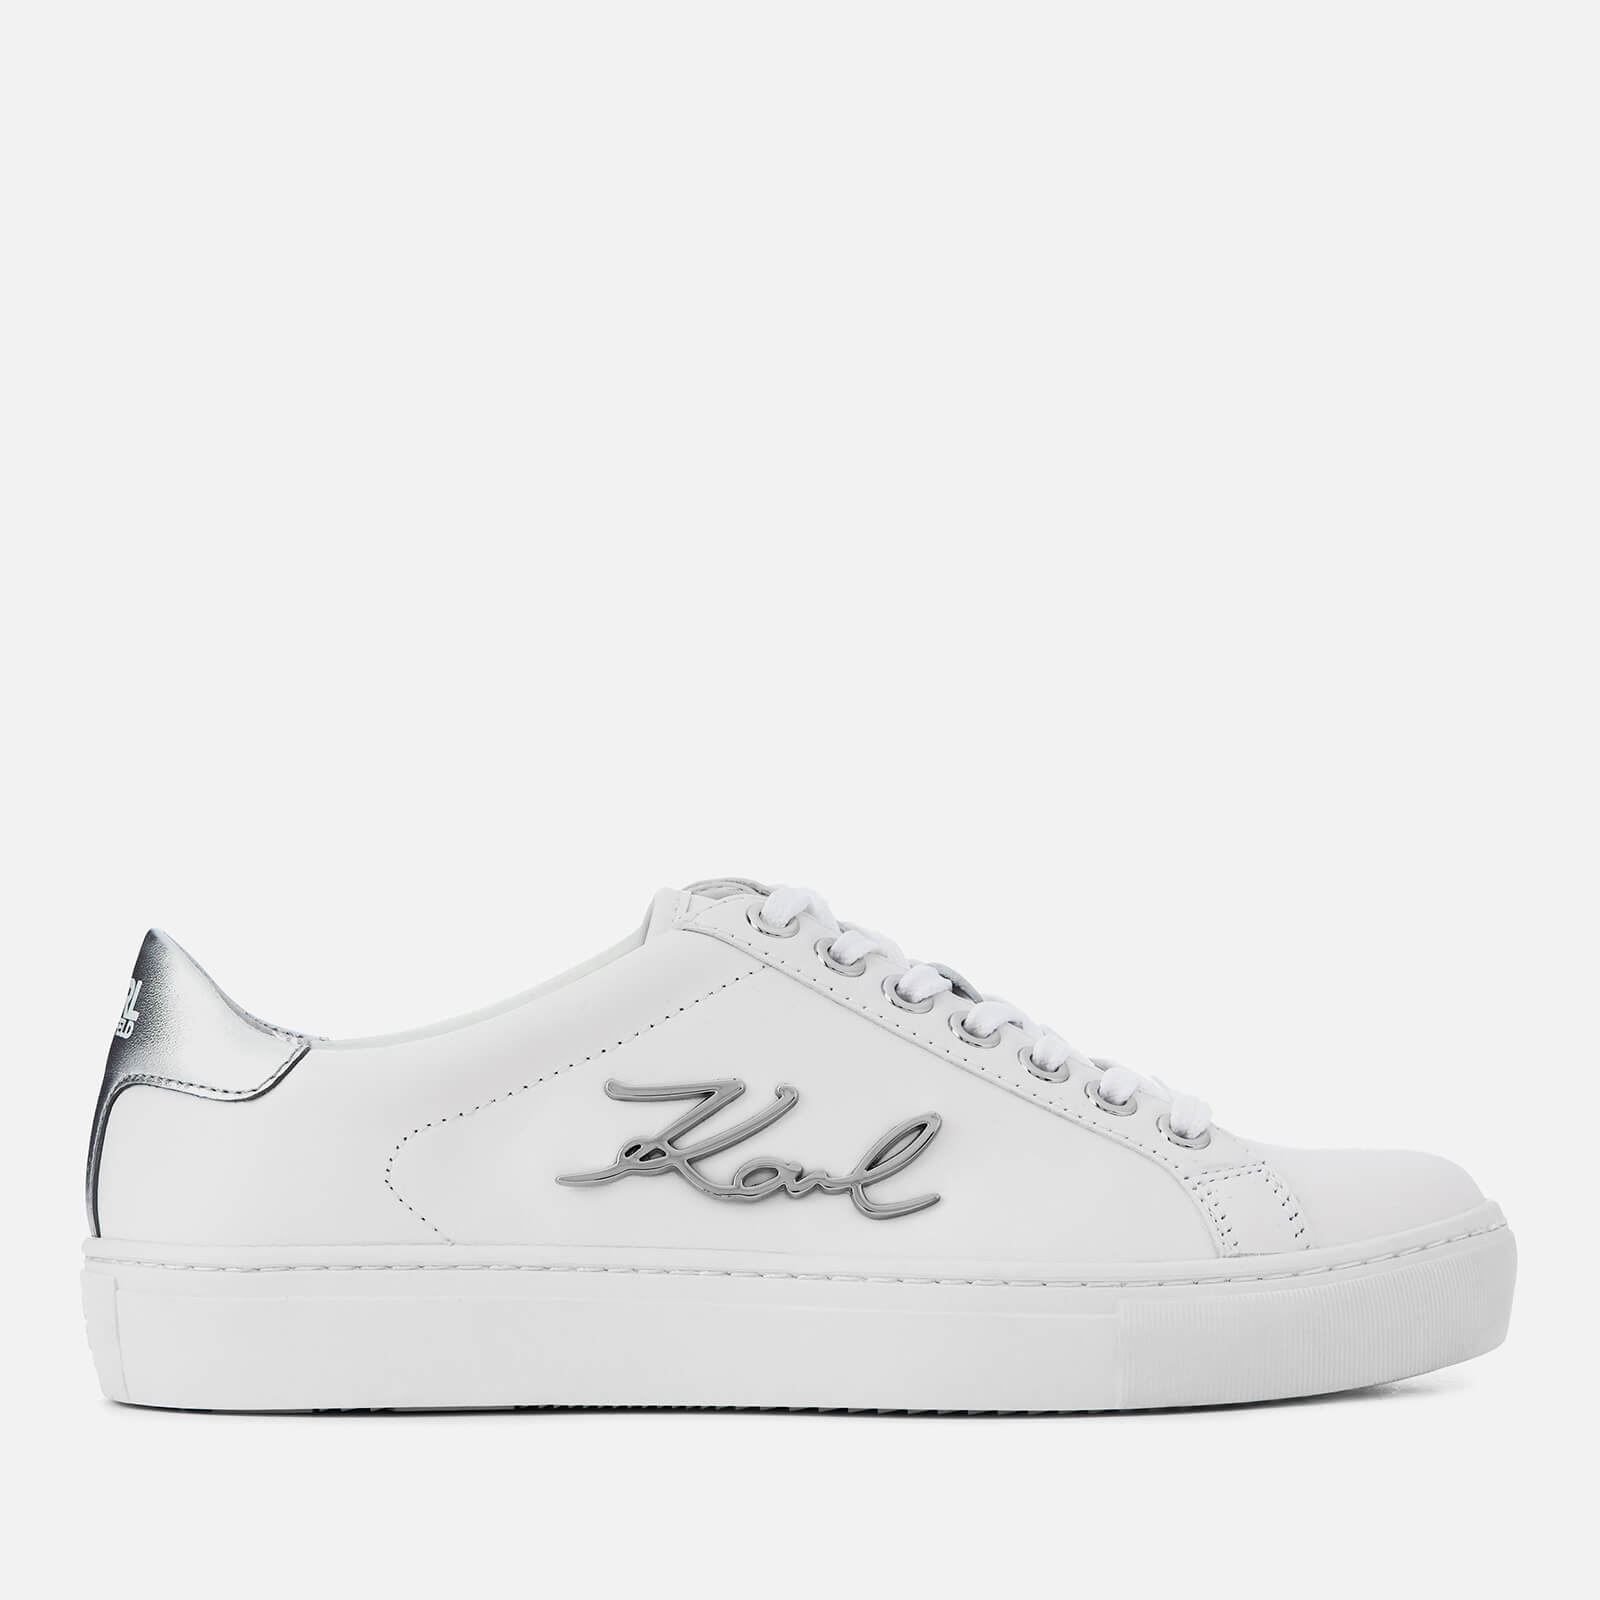 76909dab9c4 Karl Lagerfeld Women s Kupsole Signia Leather Low Top Trainers - White  Womens Footwear